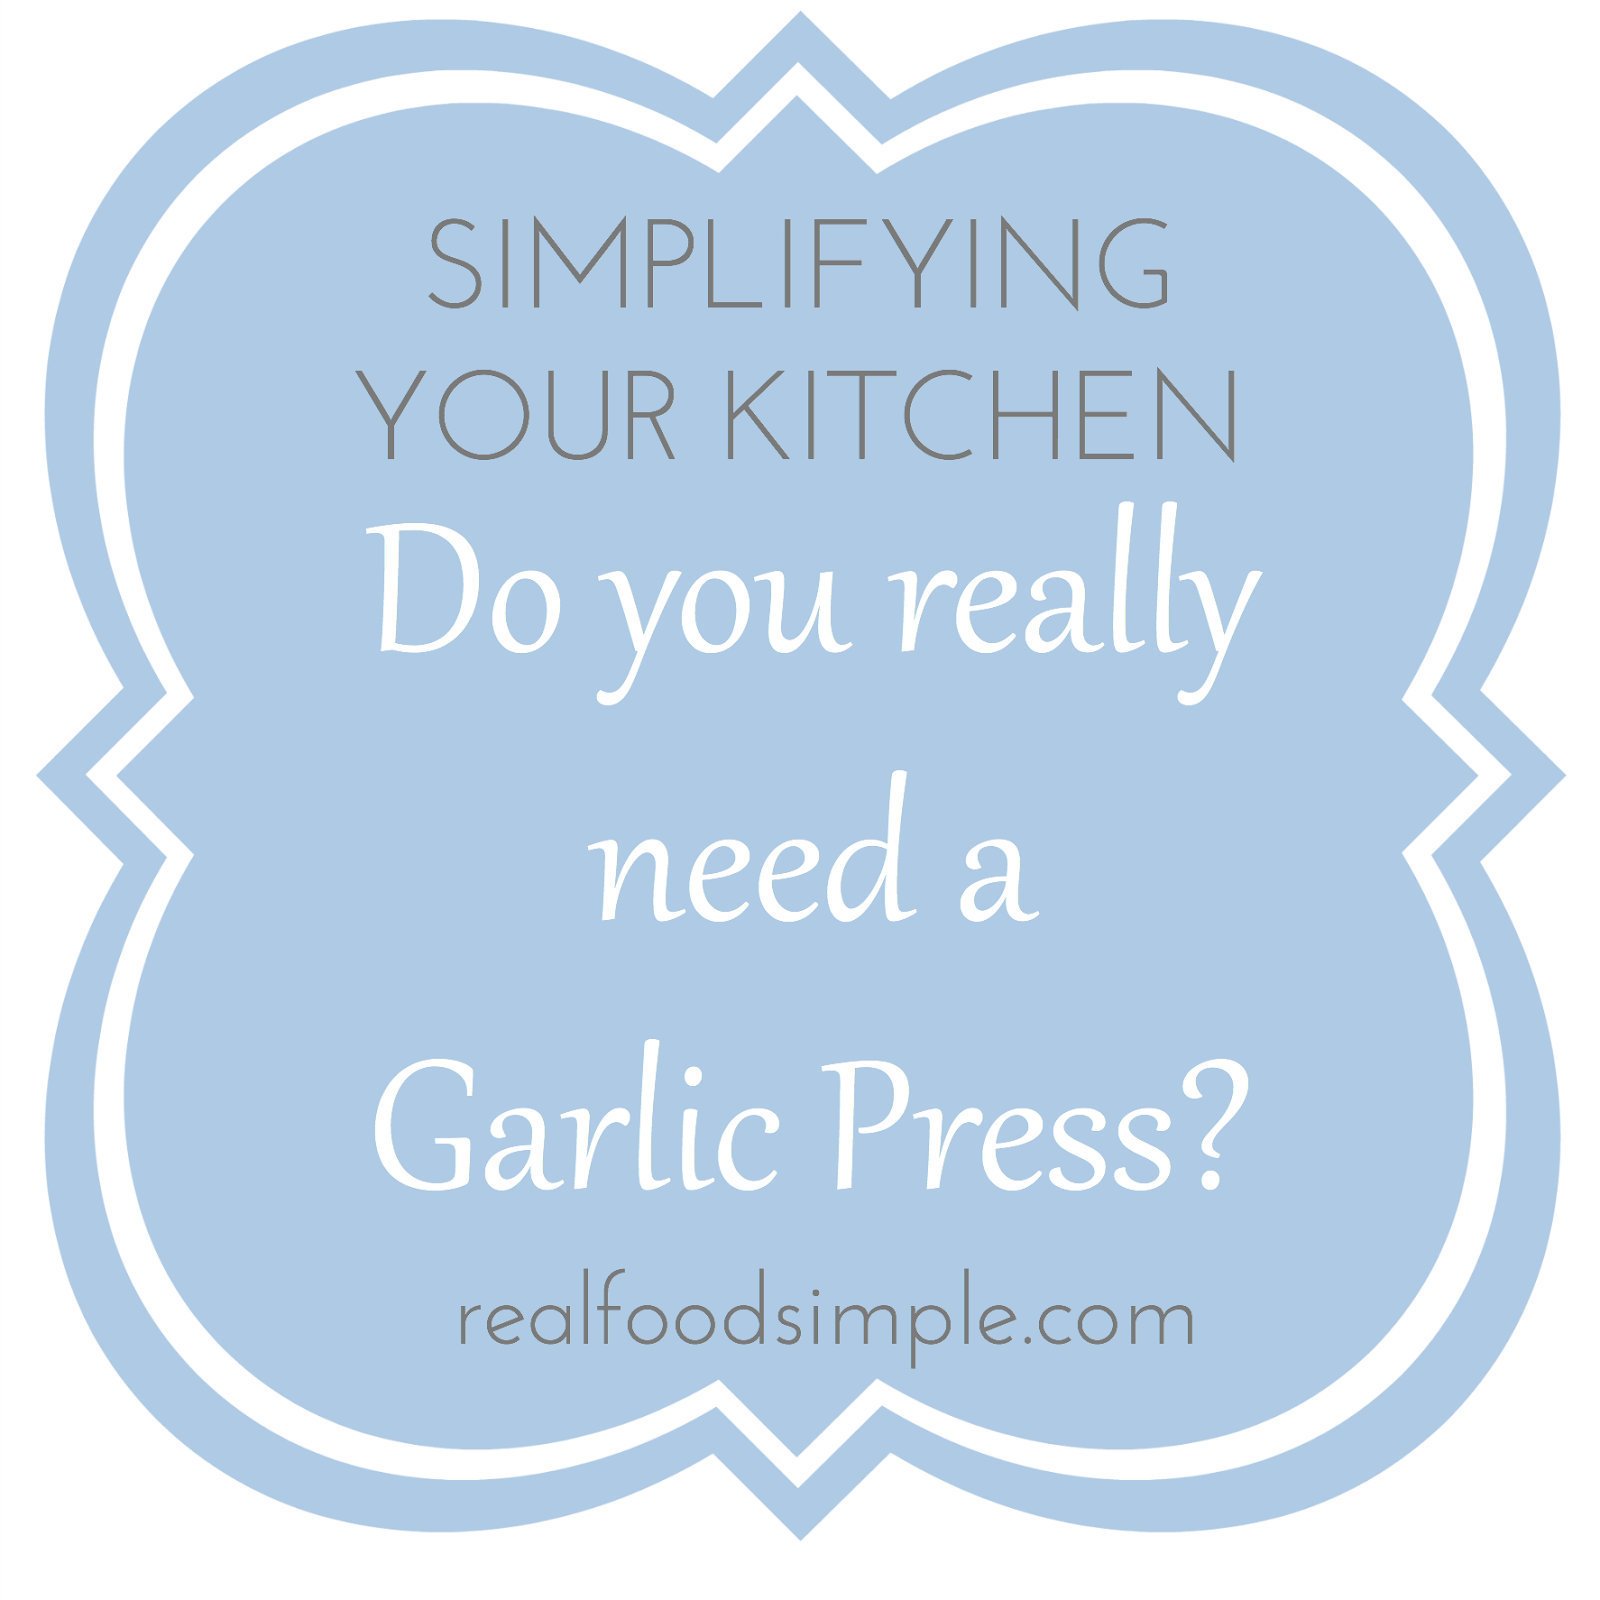 simplifying your kitchen - the garlic press. Ask yourself, which tools do you really need to cook healthy, real food from scratch. A decluttered kitchen makes cooking easier and more enjoyable. | realfoodsimple.com